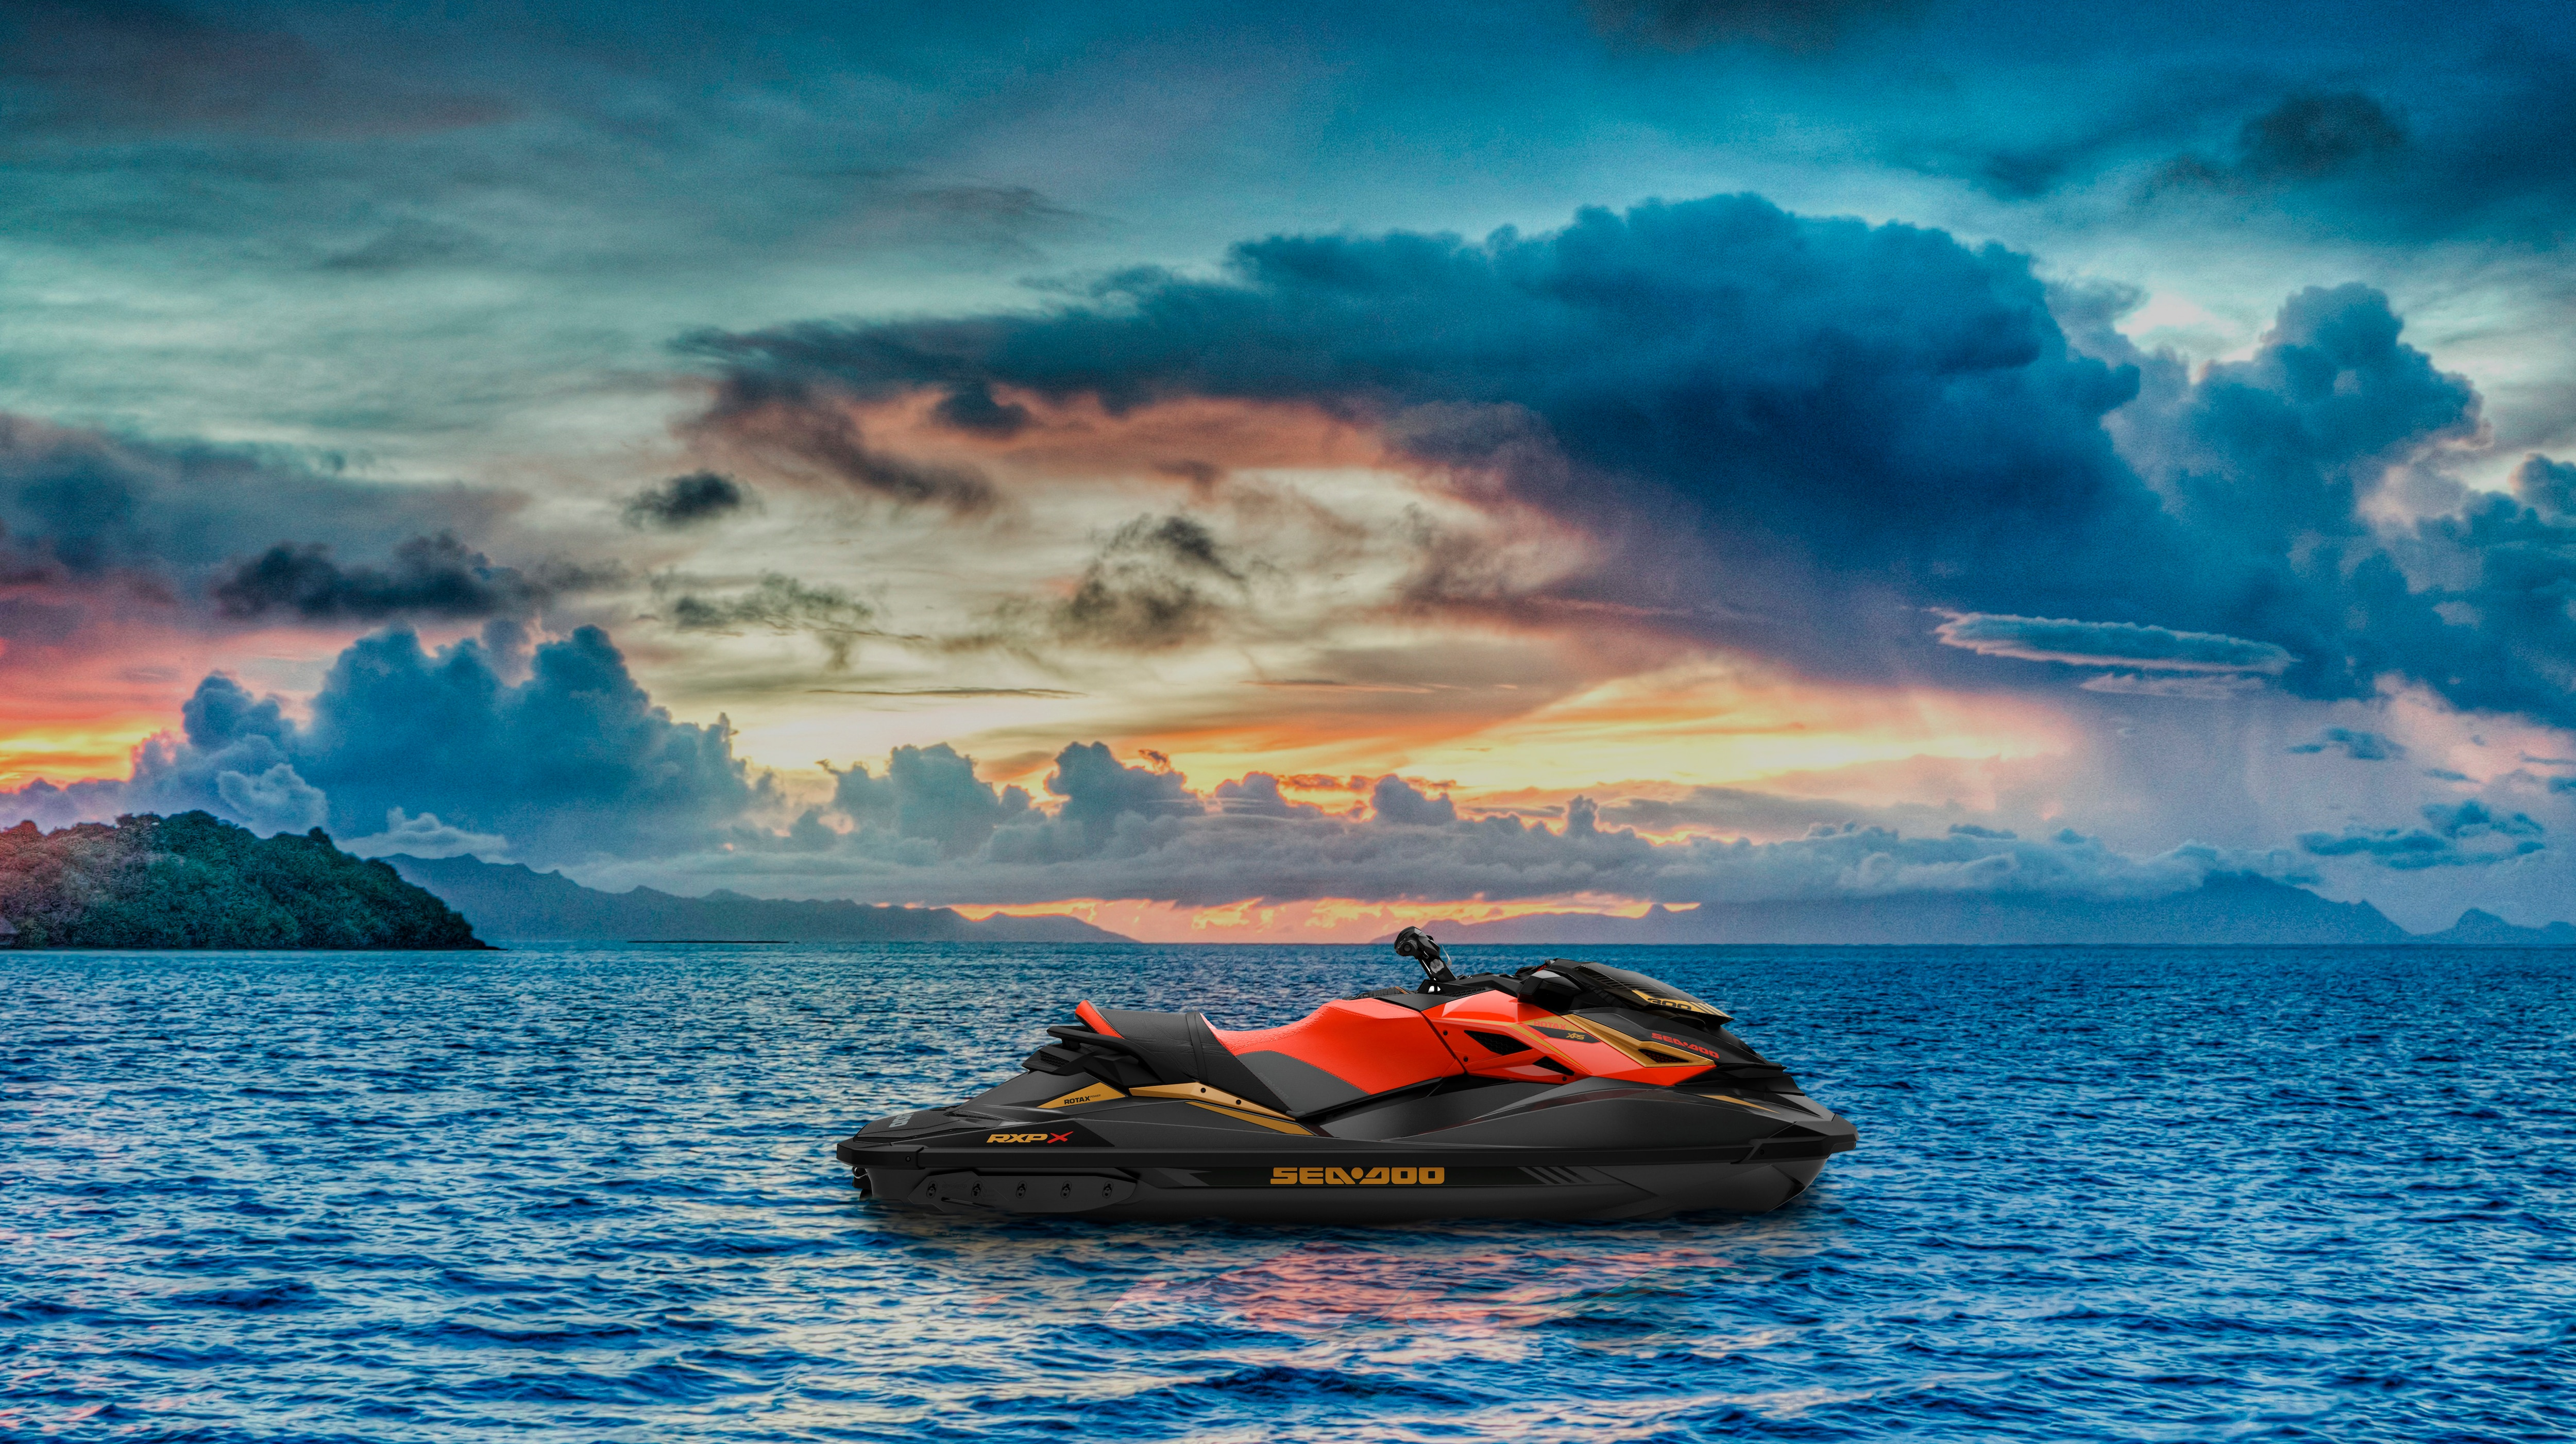 Scenic landscape of a parked Sea-Doo RXP